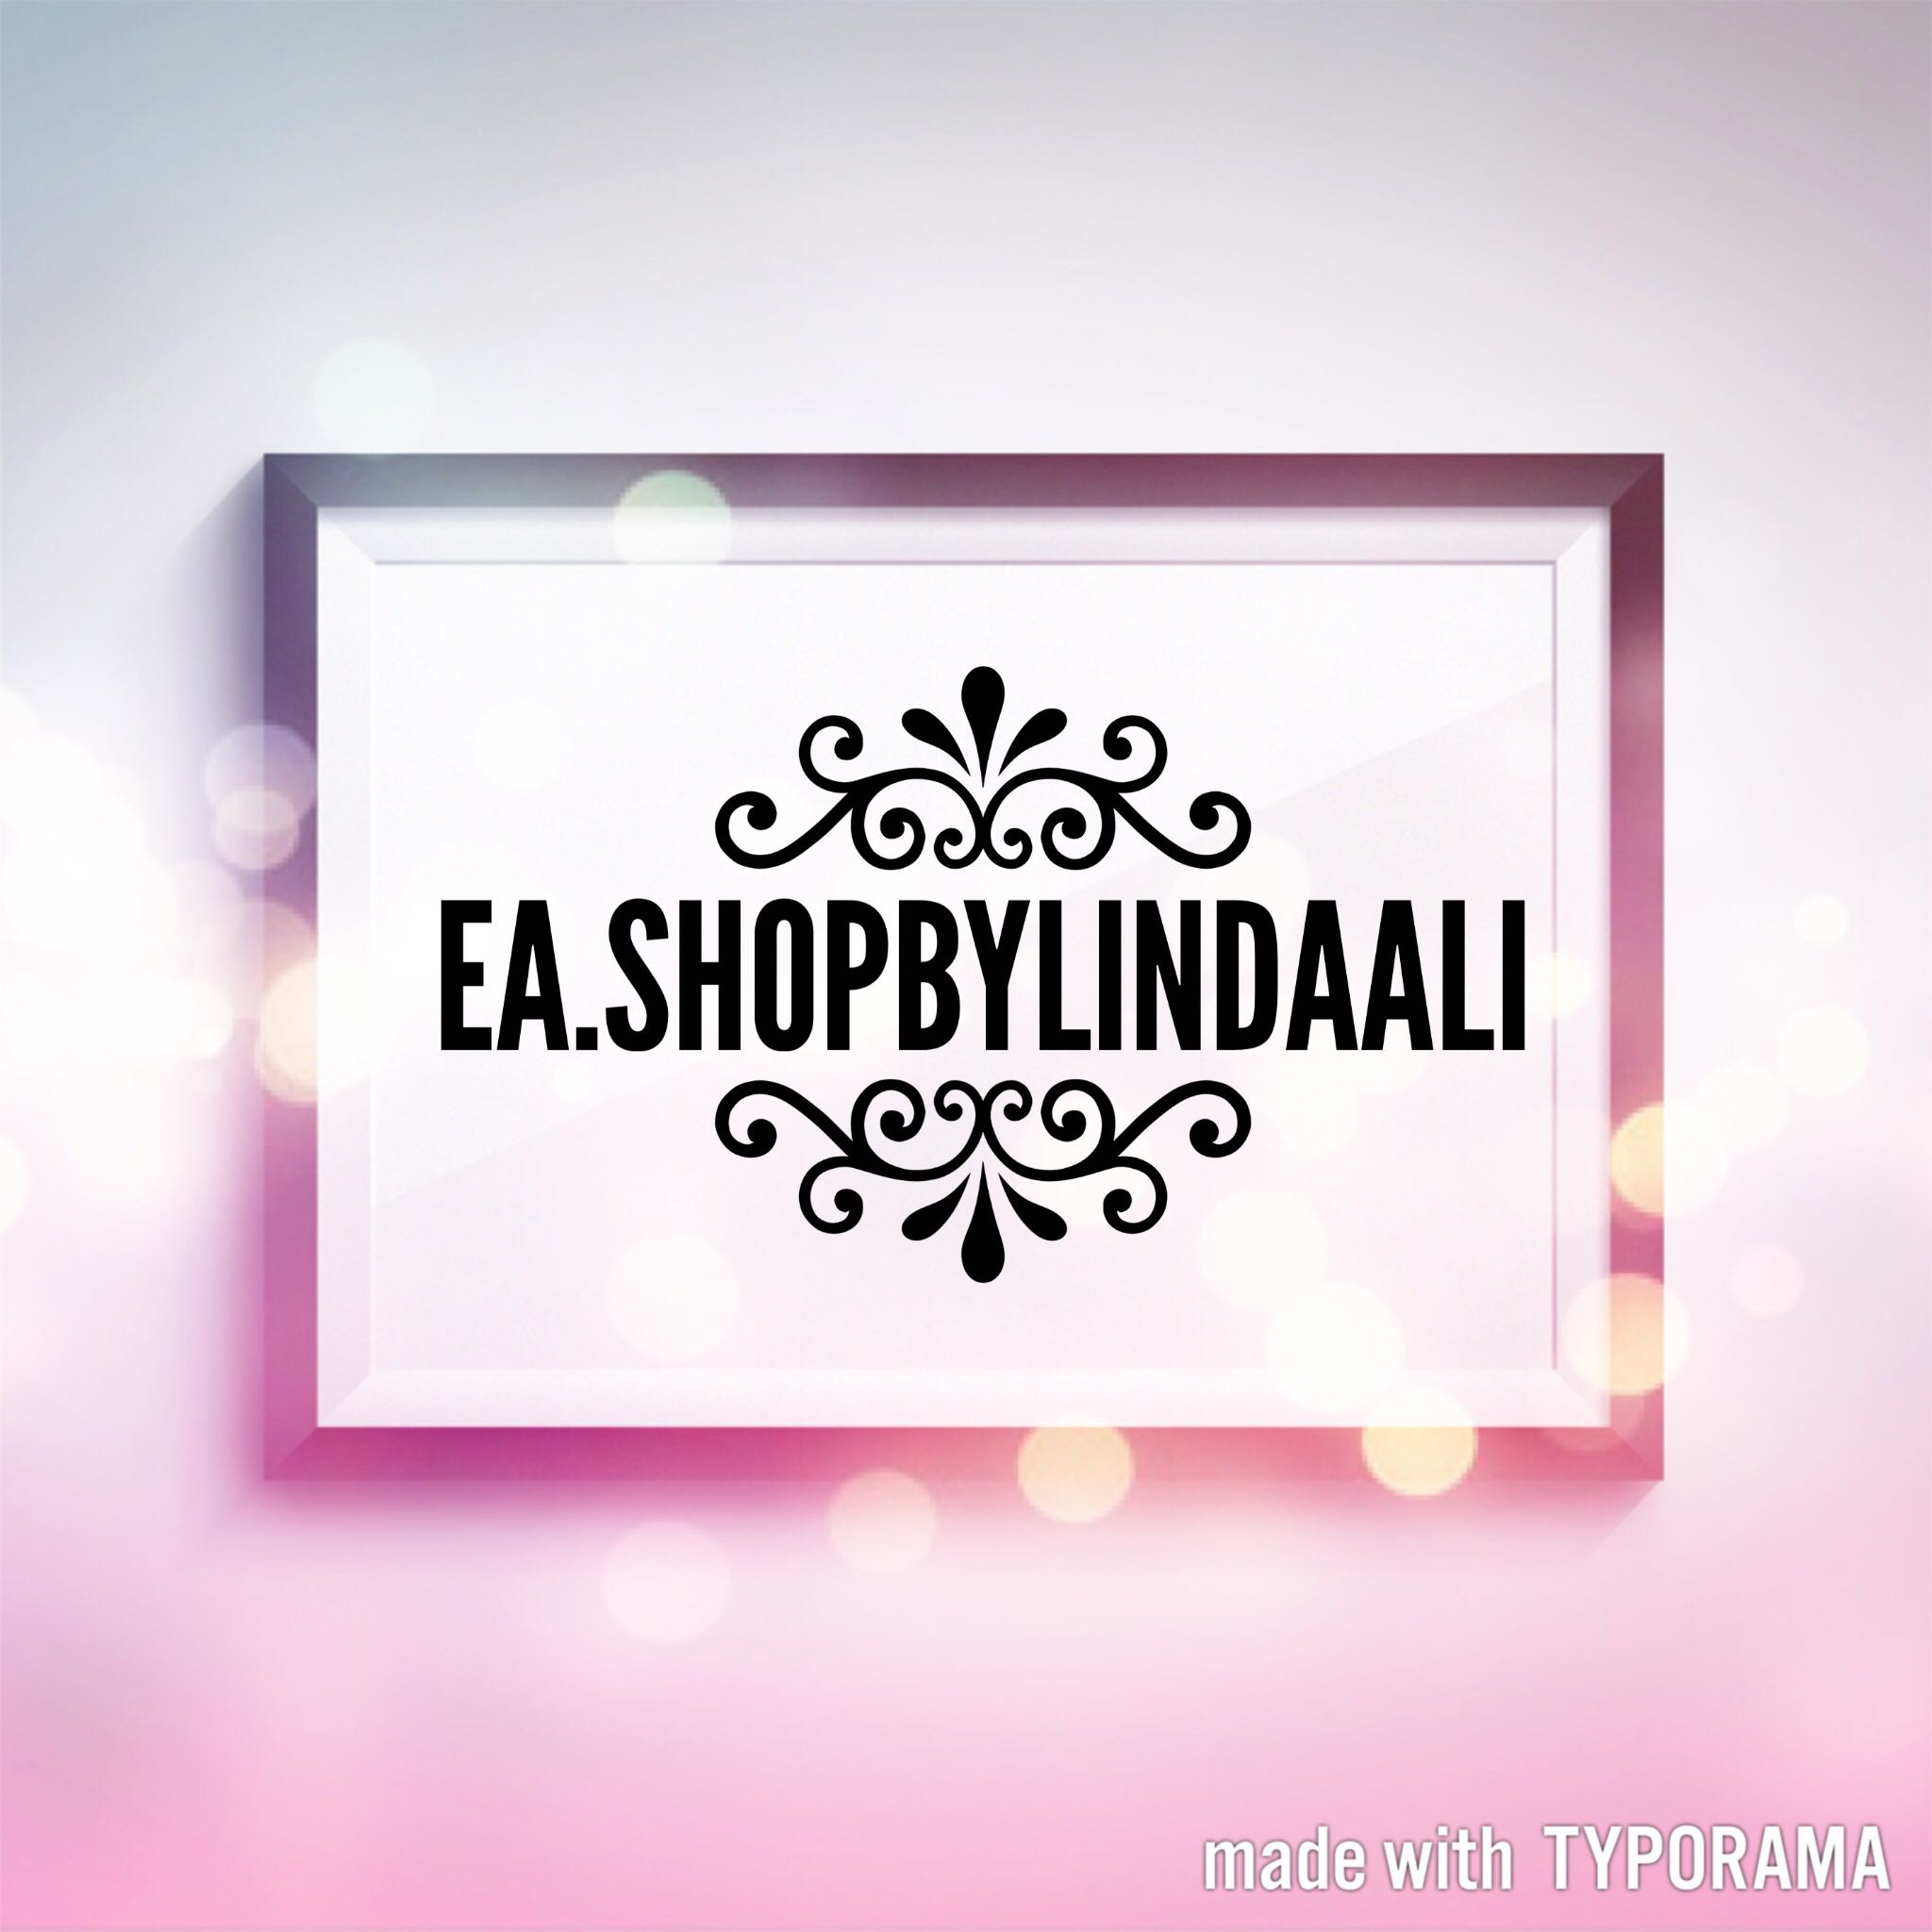 ea.shopbylindaali